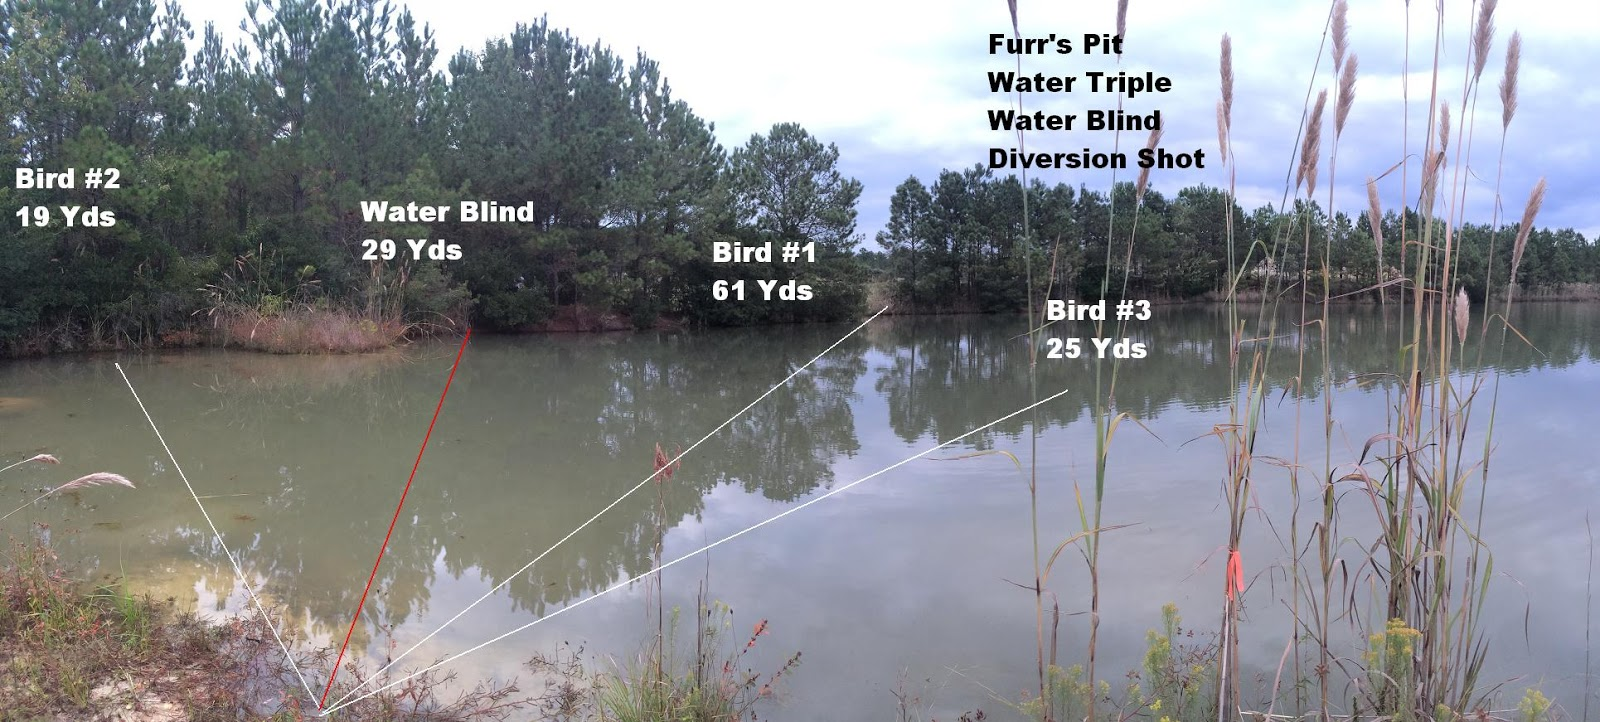 2015 diagrams byrd s campground furr s pitt wood duck for Duck pond water